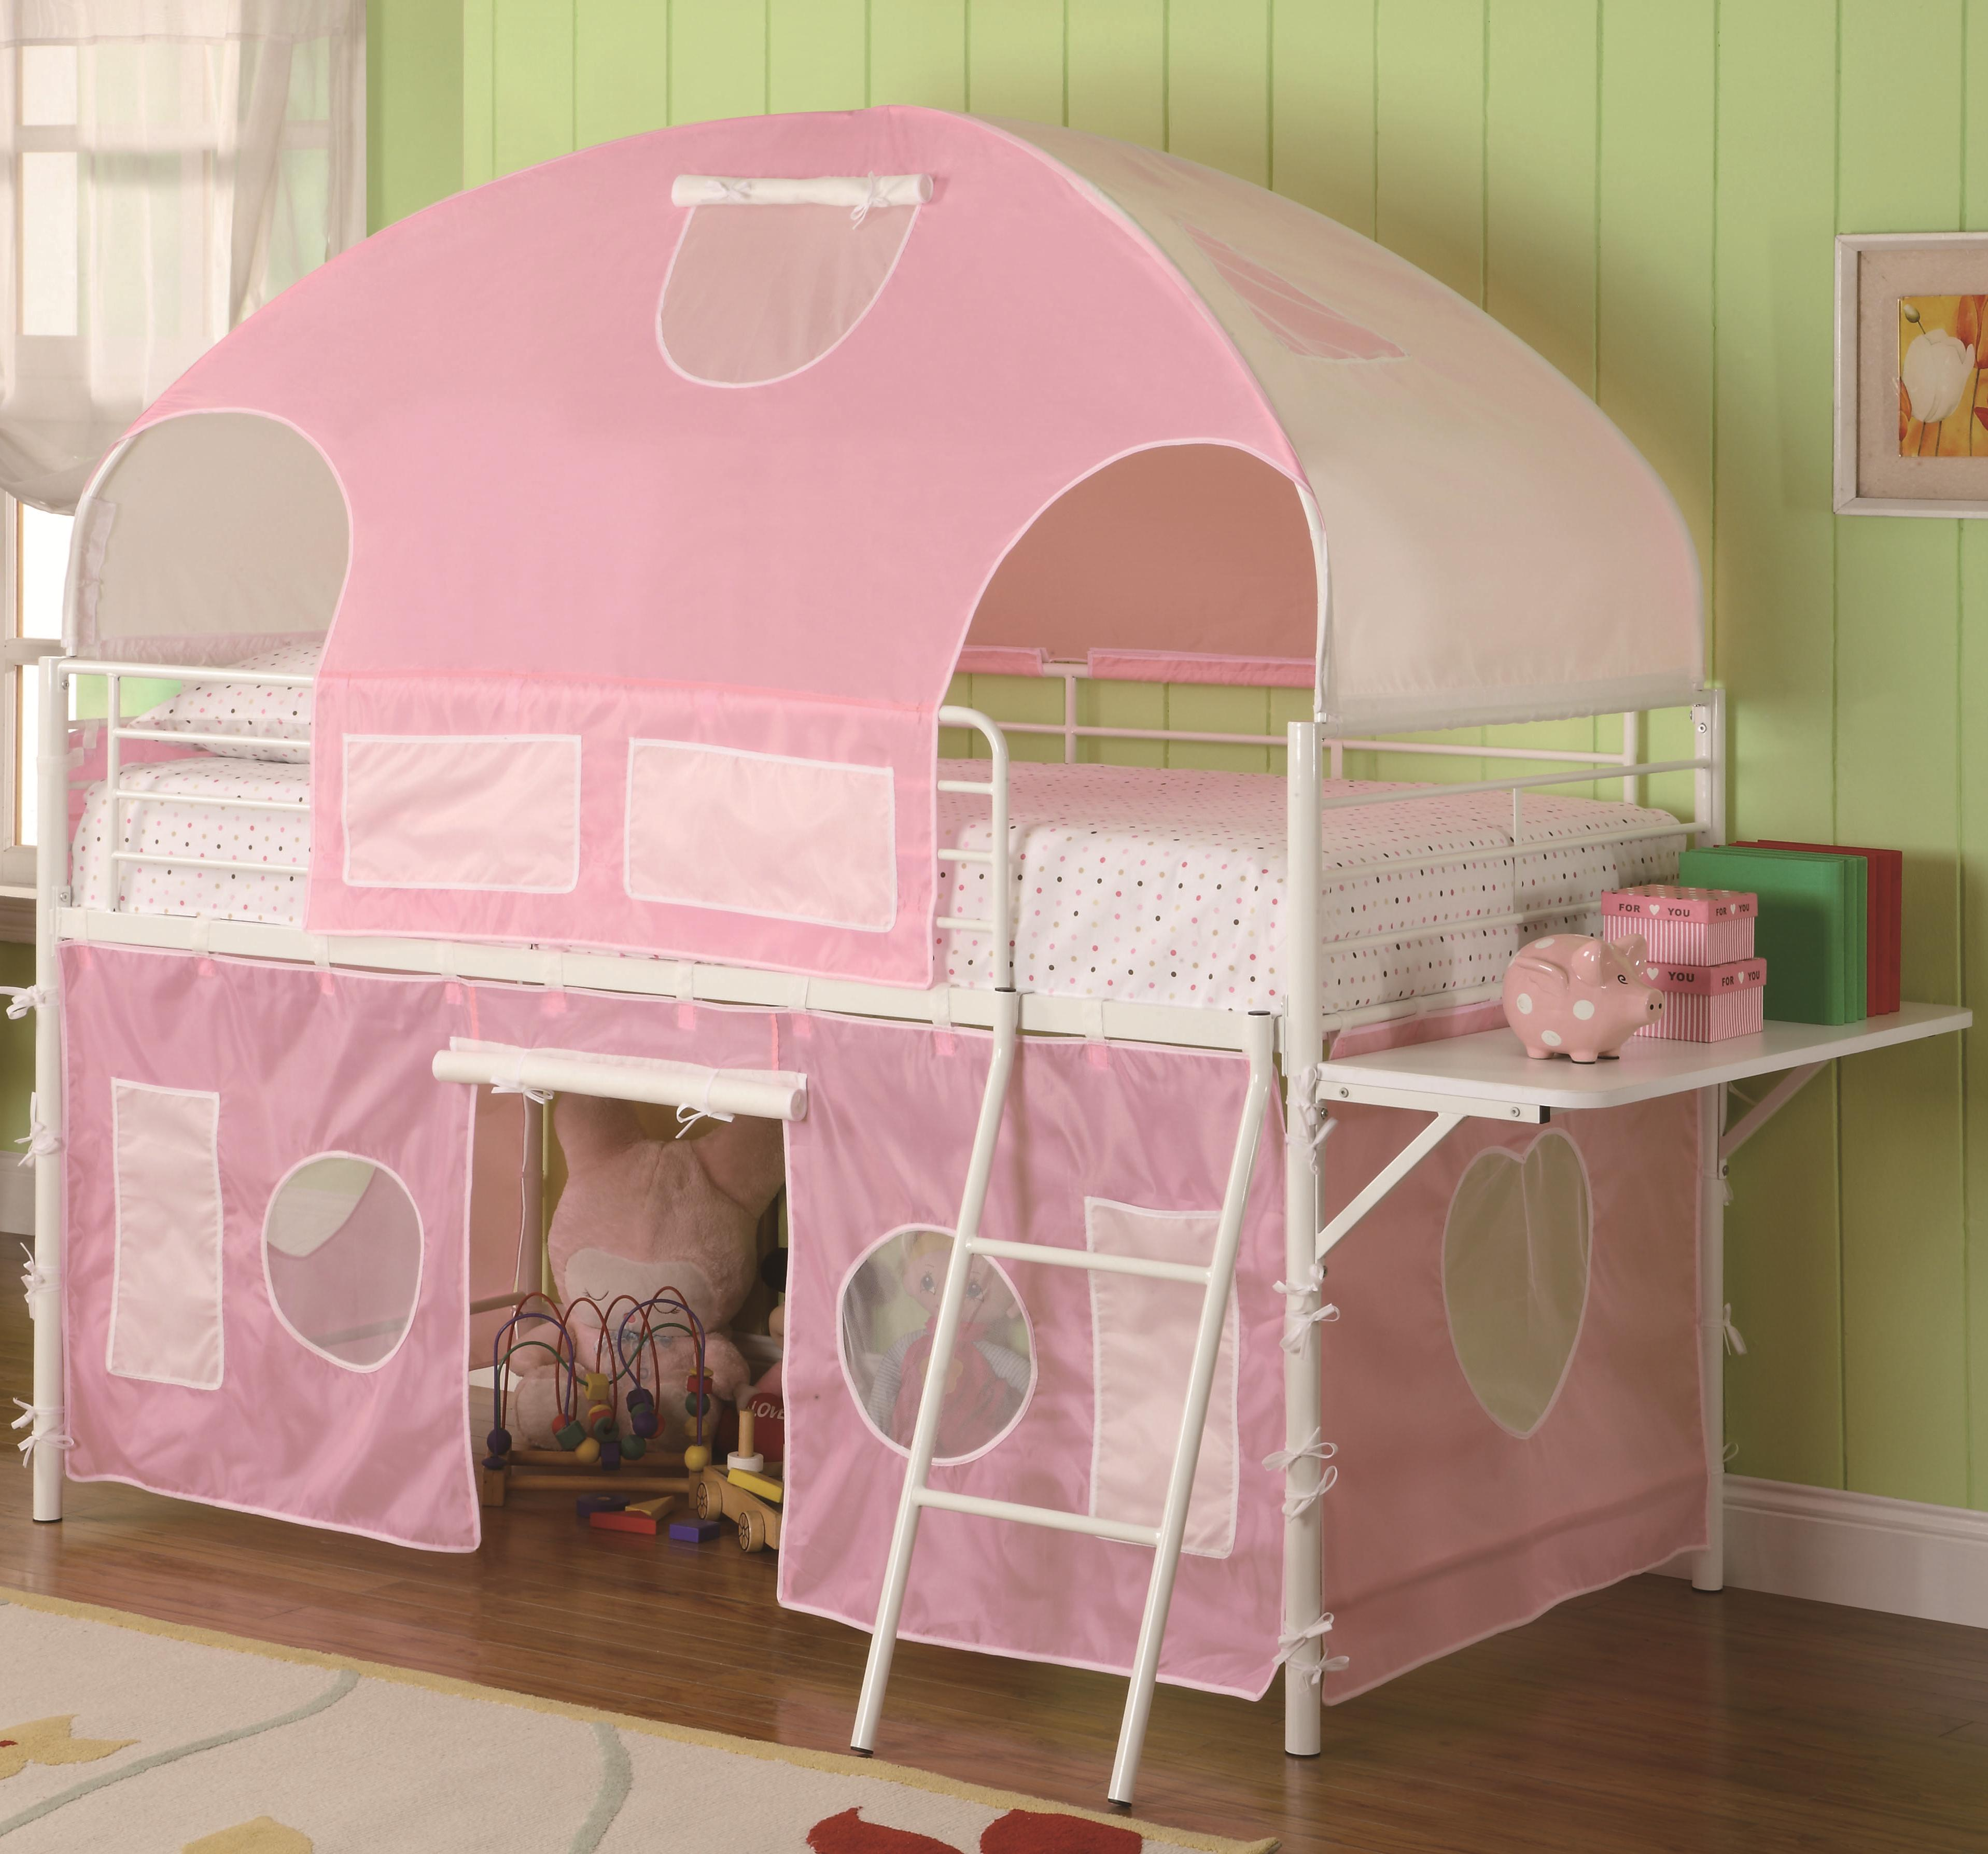 Bunks Tent Bunk Bed by Coaster at Northeast Factory Direct